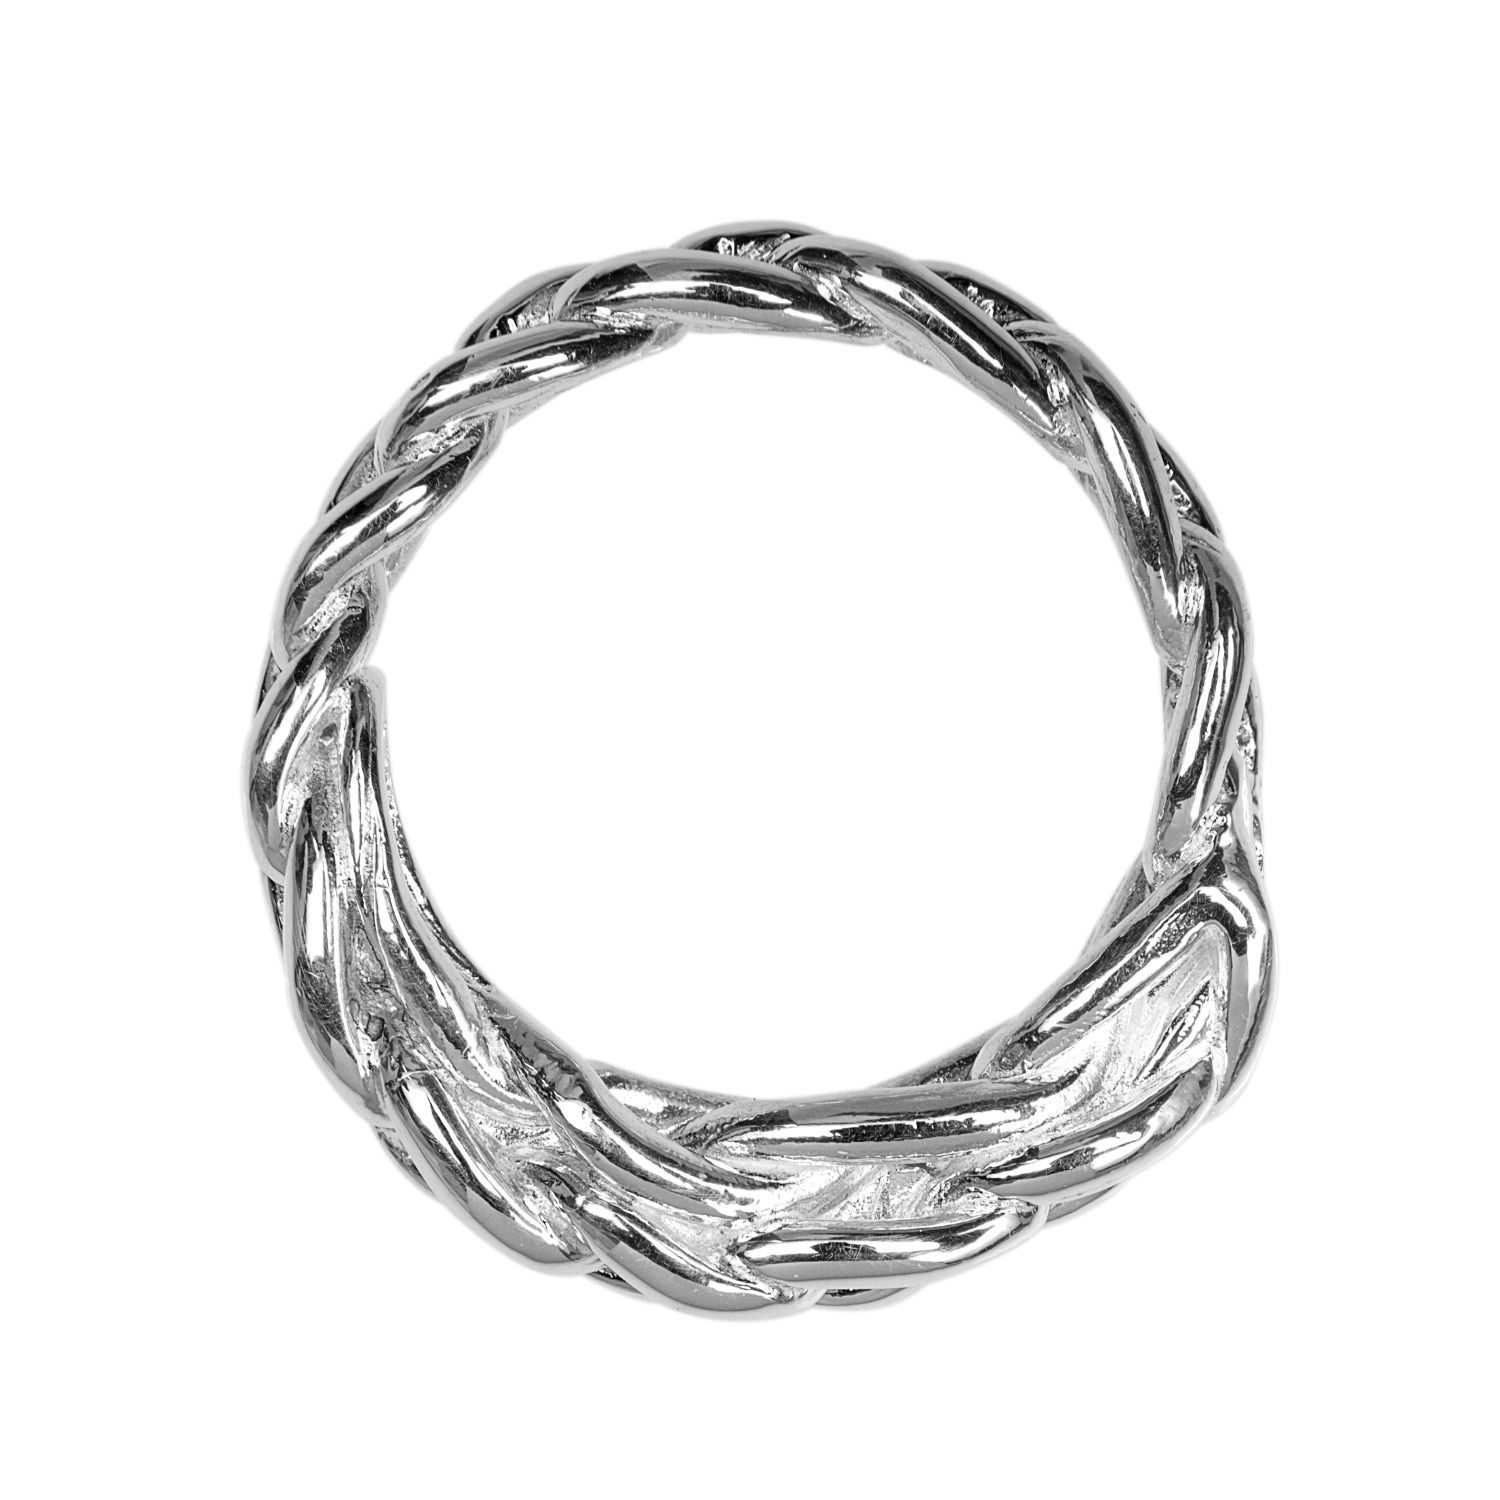 ali grace jewelry sterling silver braided ring in silver